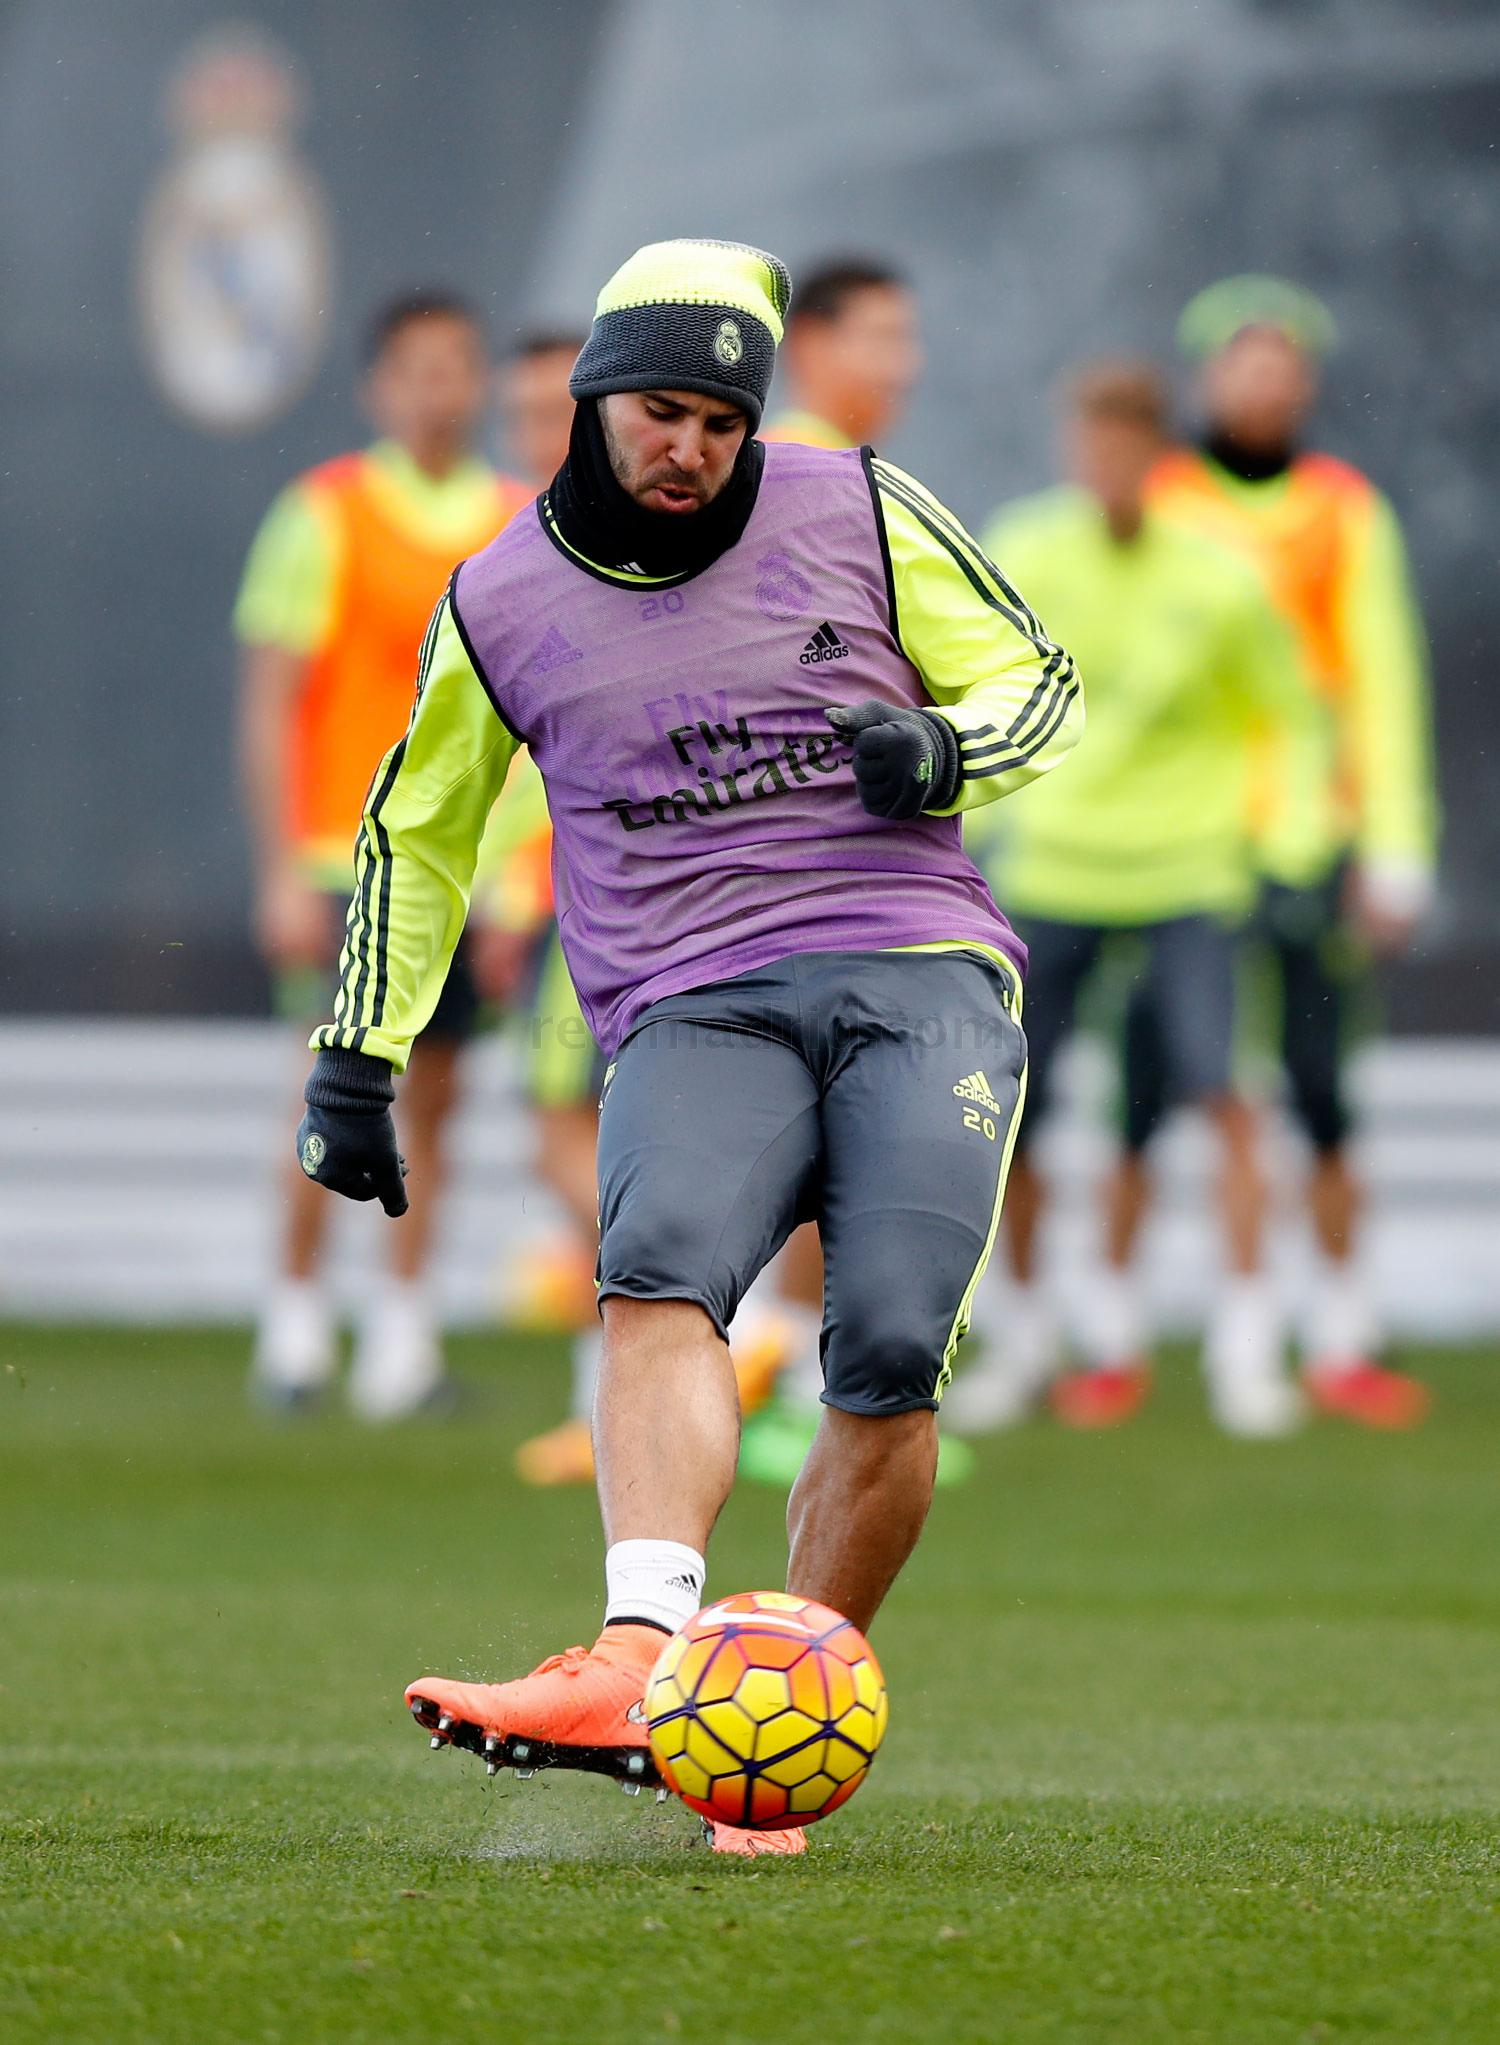 Real Madrid - Entrenamiento del Real Madrid - 11-02-2016